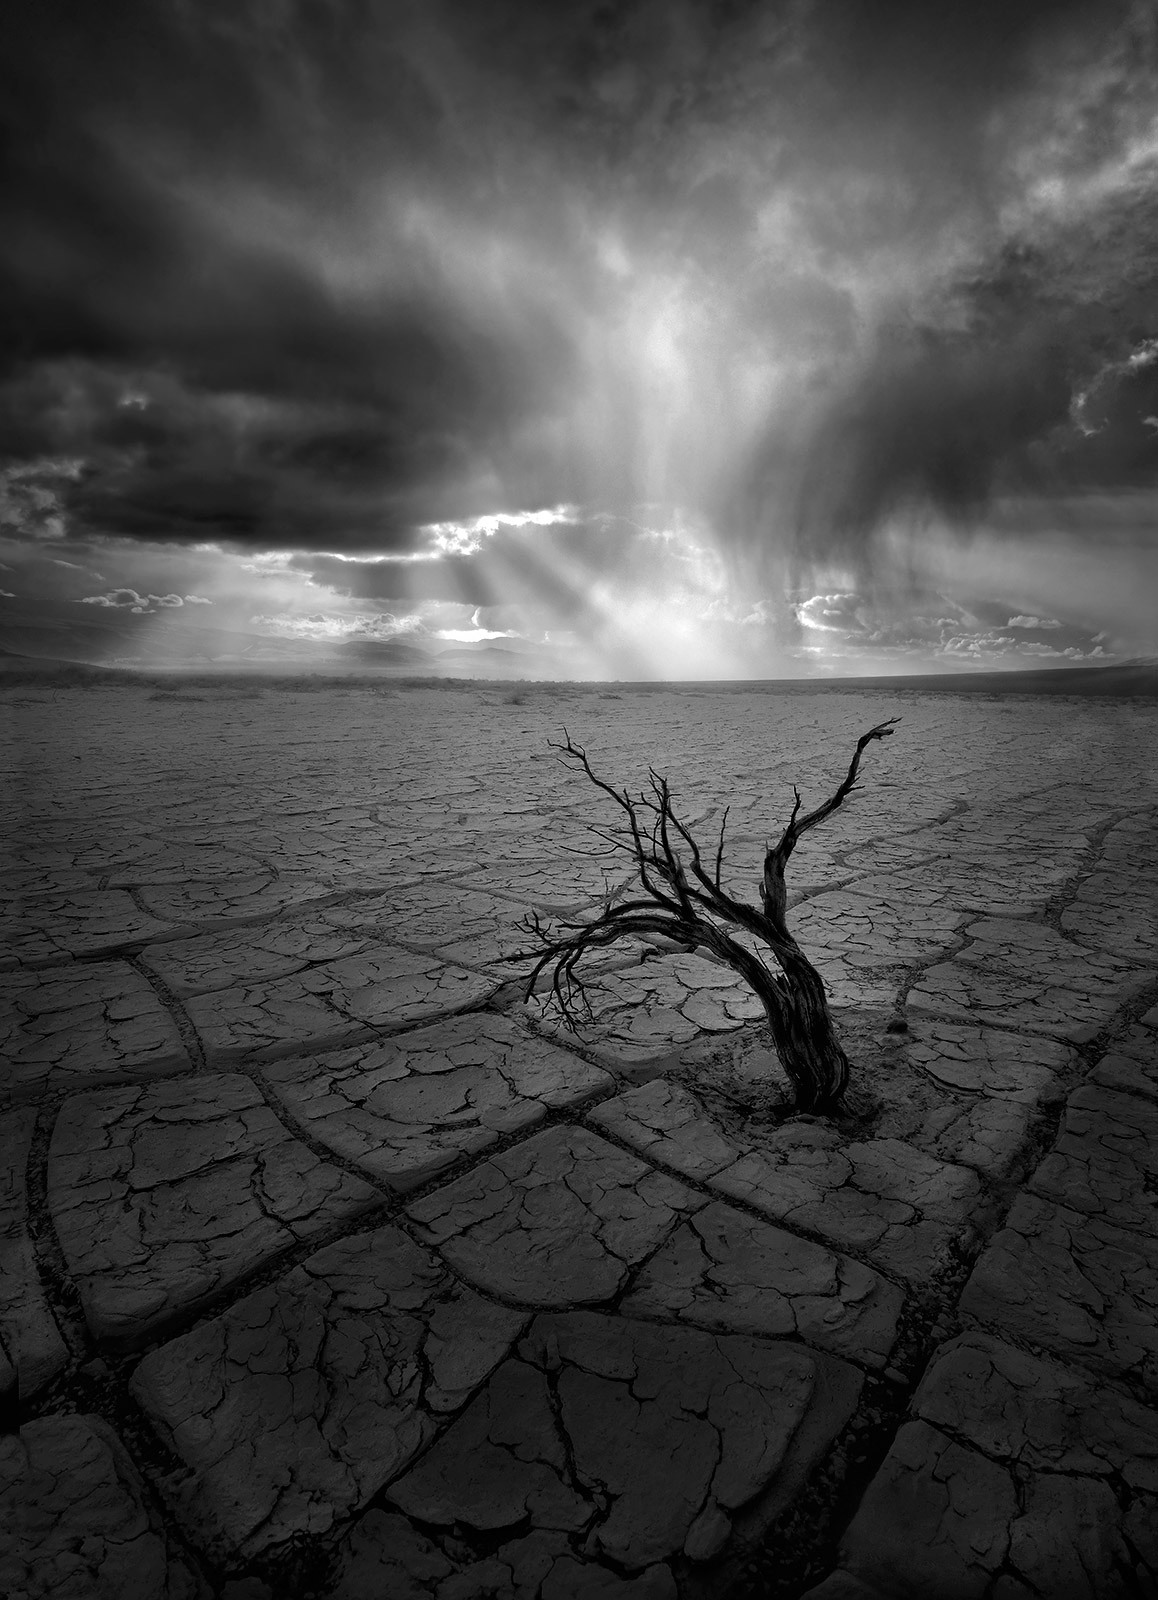 rainstorm, powerful, playa, desert, death valley, sagebrush, photo